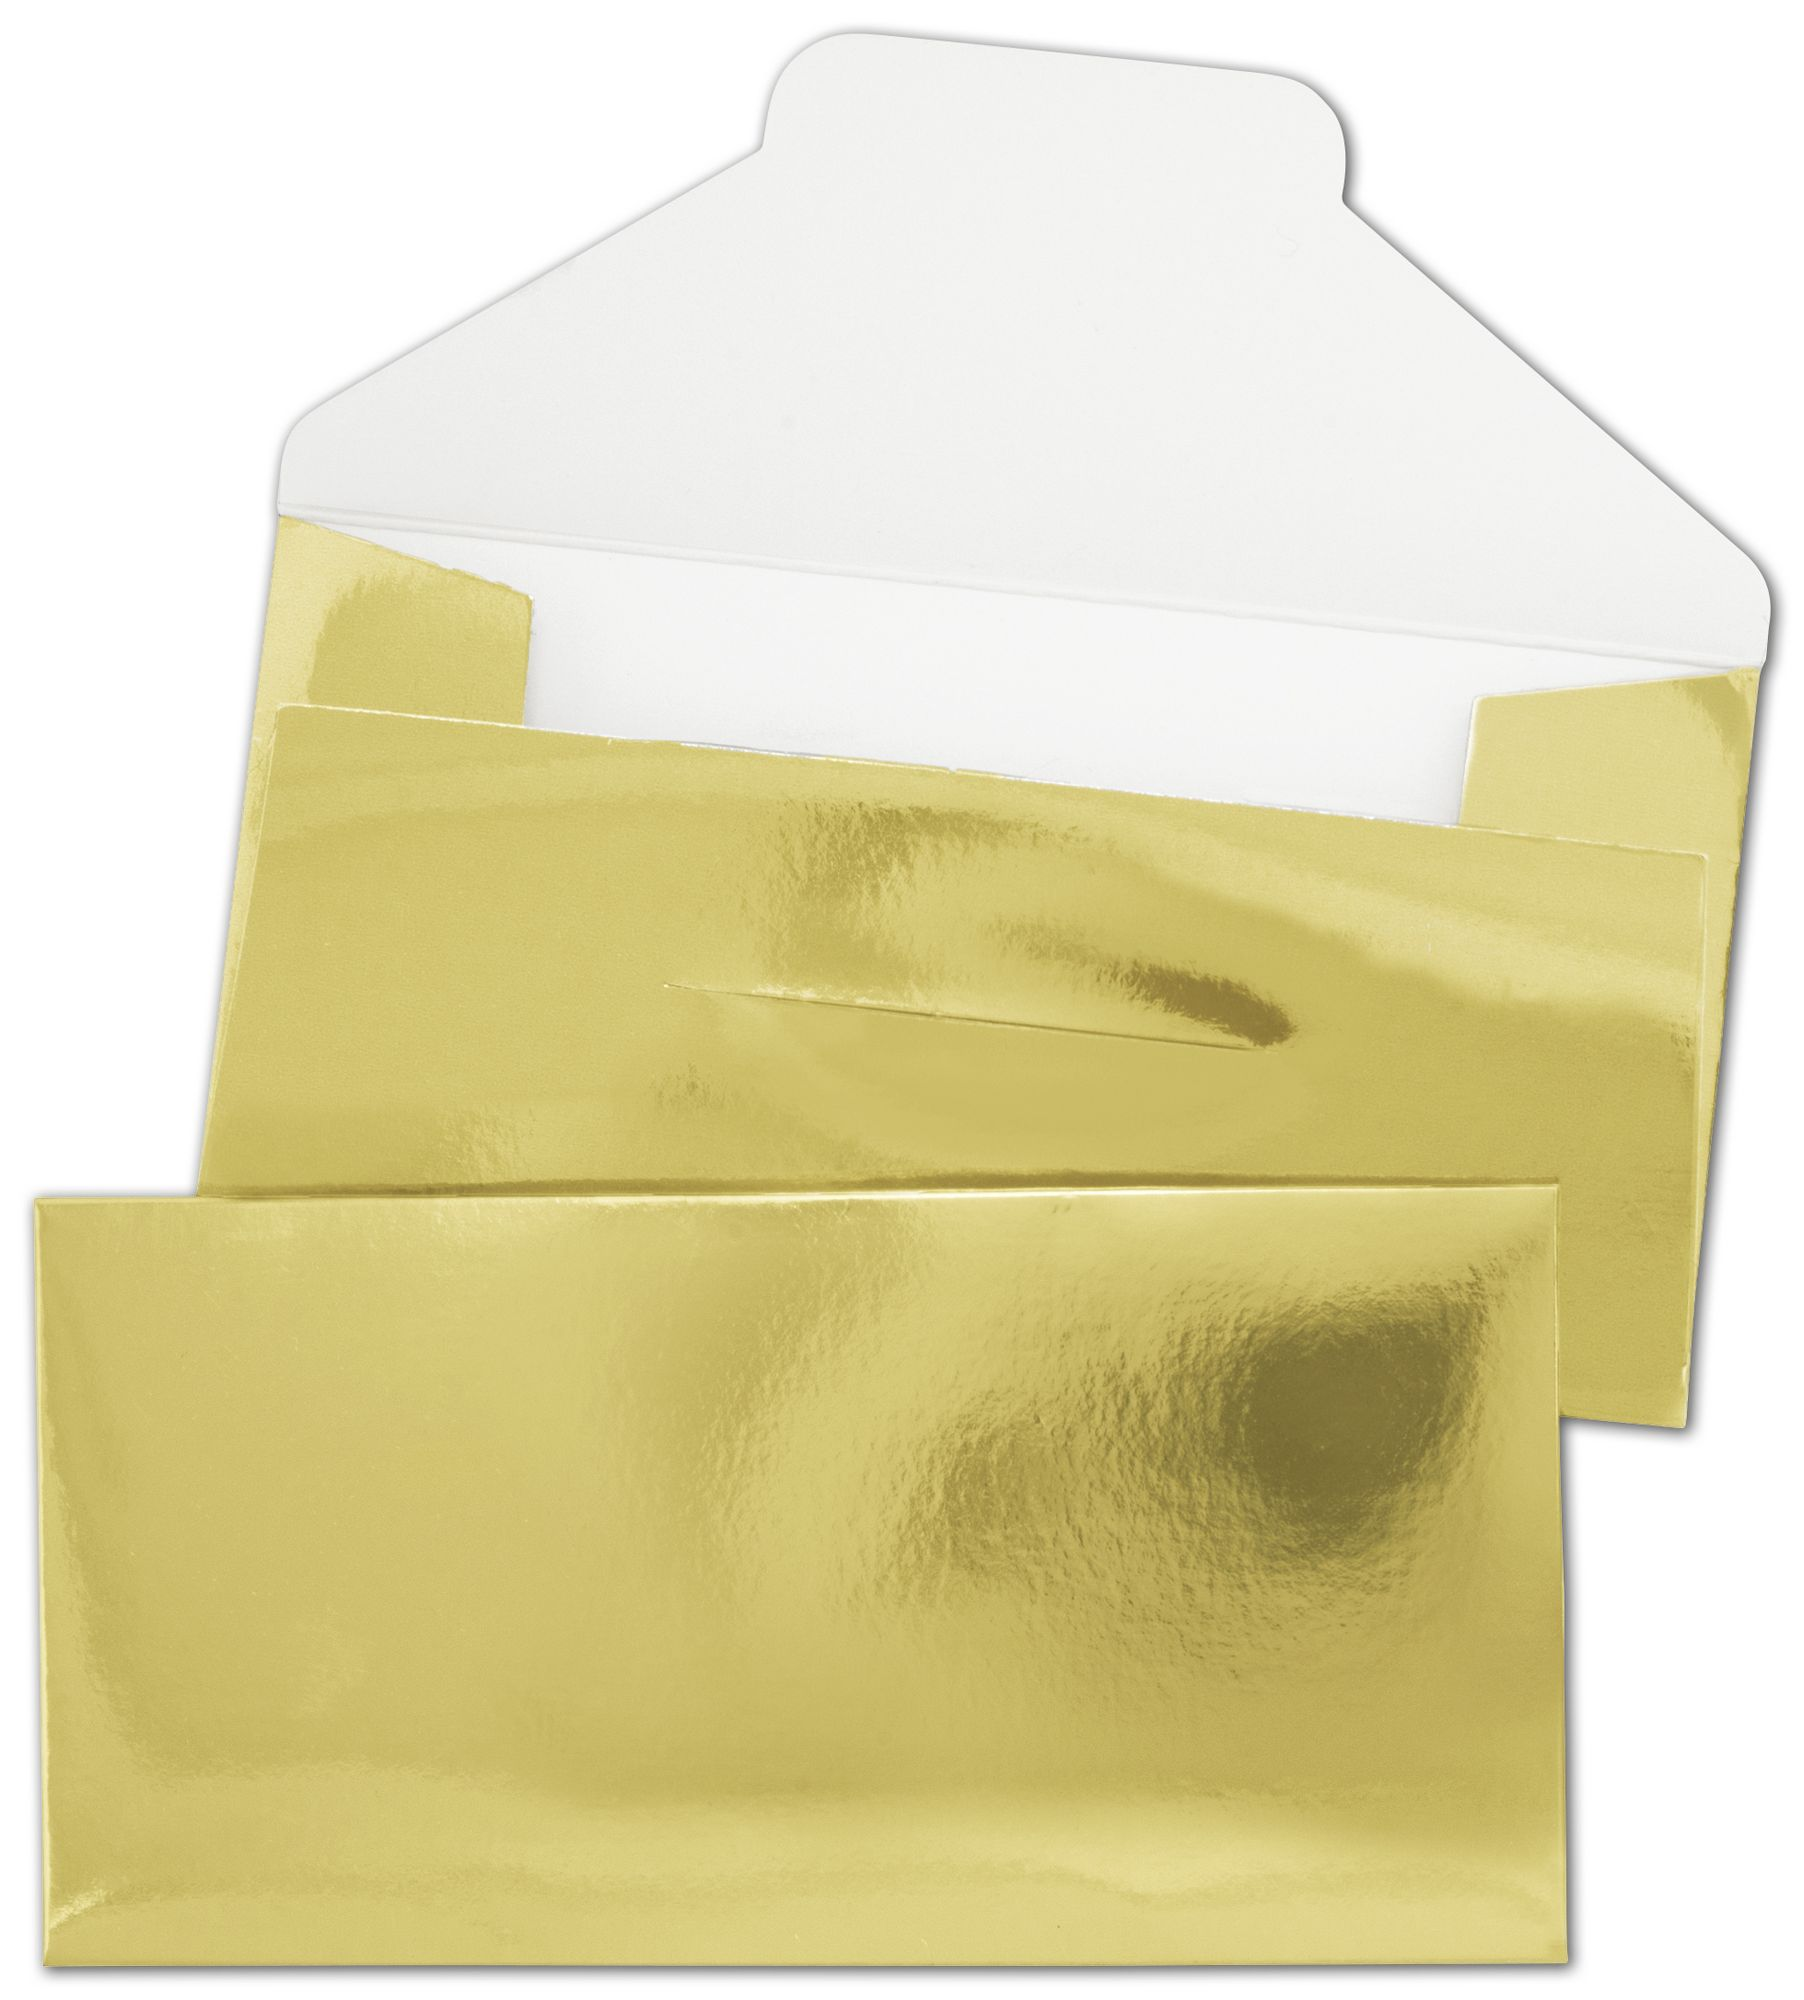 gold gift certificate envelopes 3 1 4 x 6 1 2 bags and bows